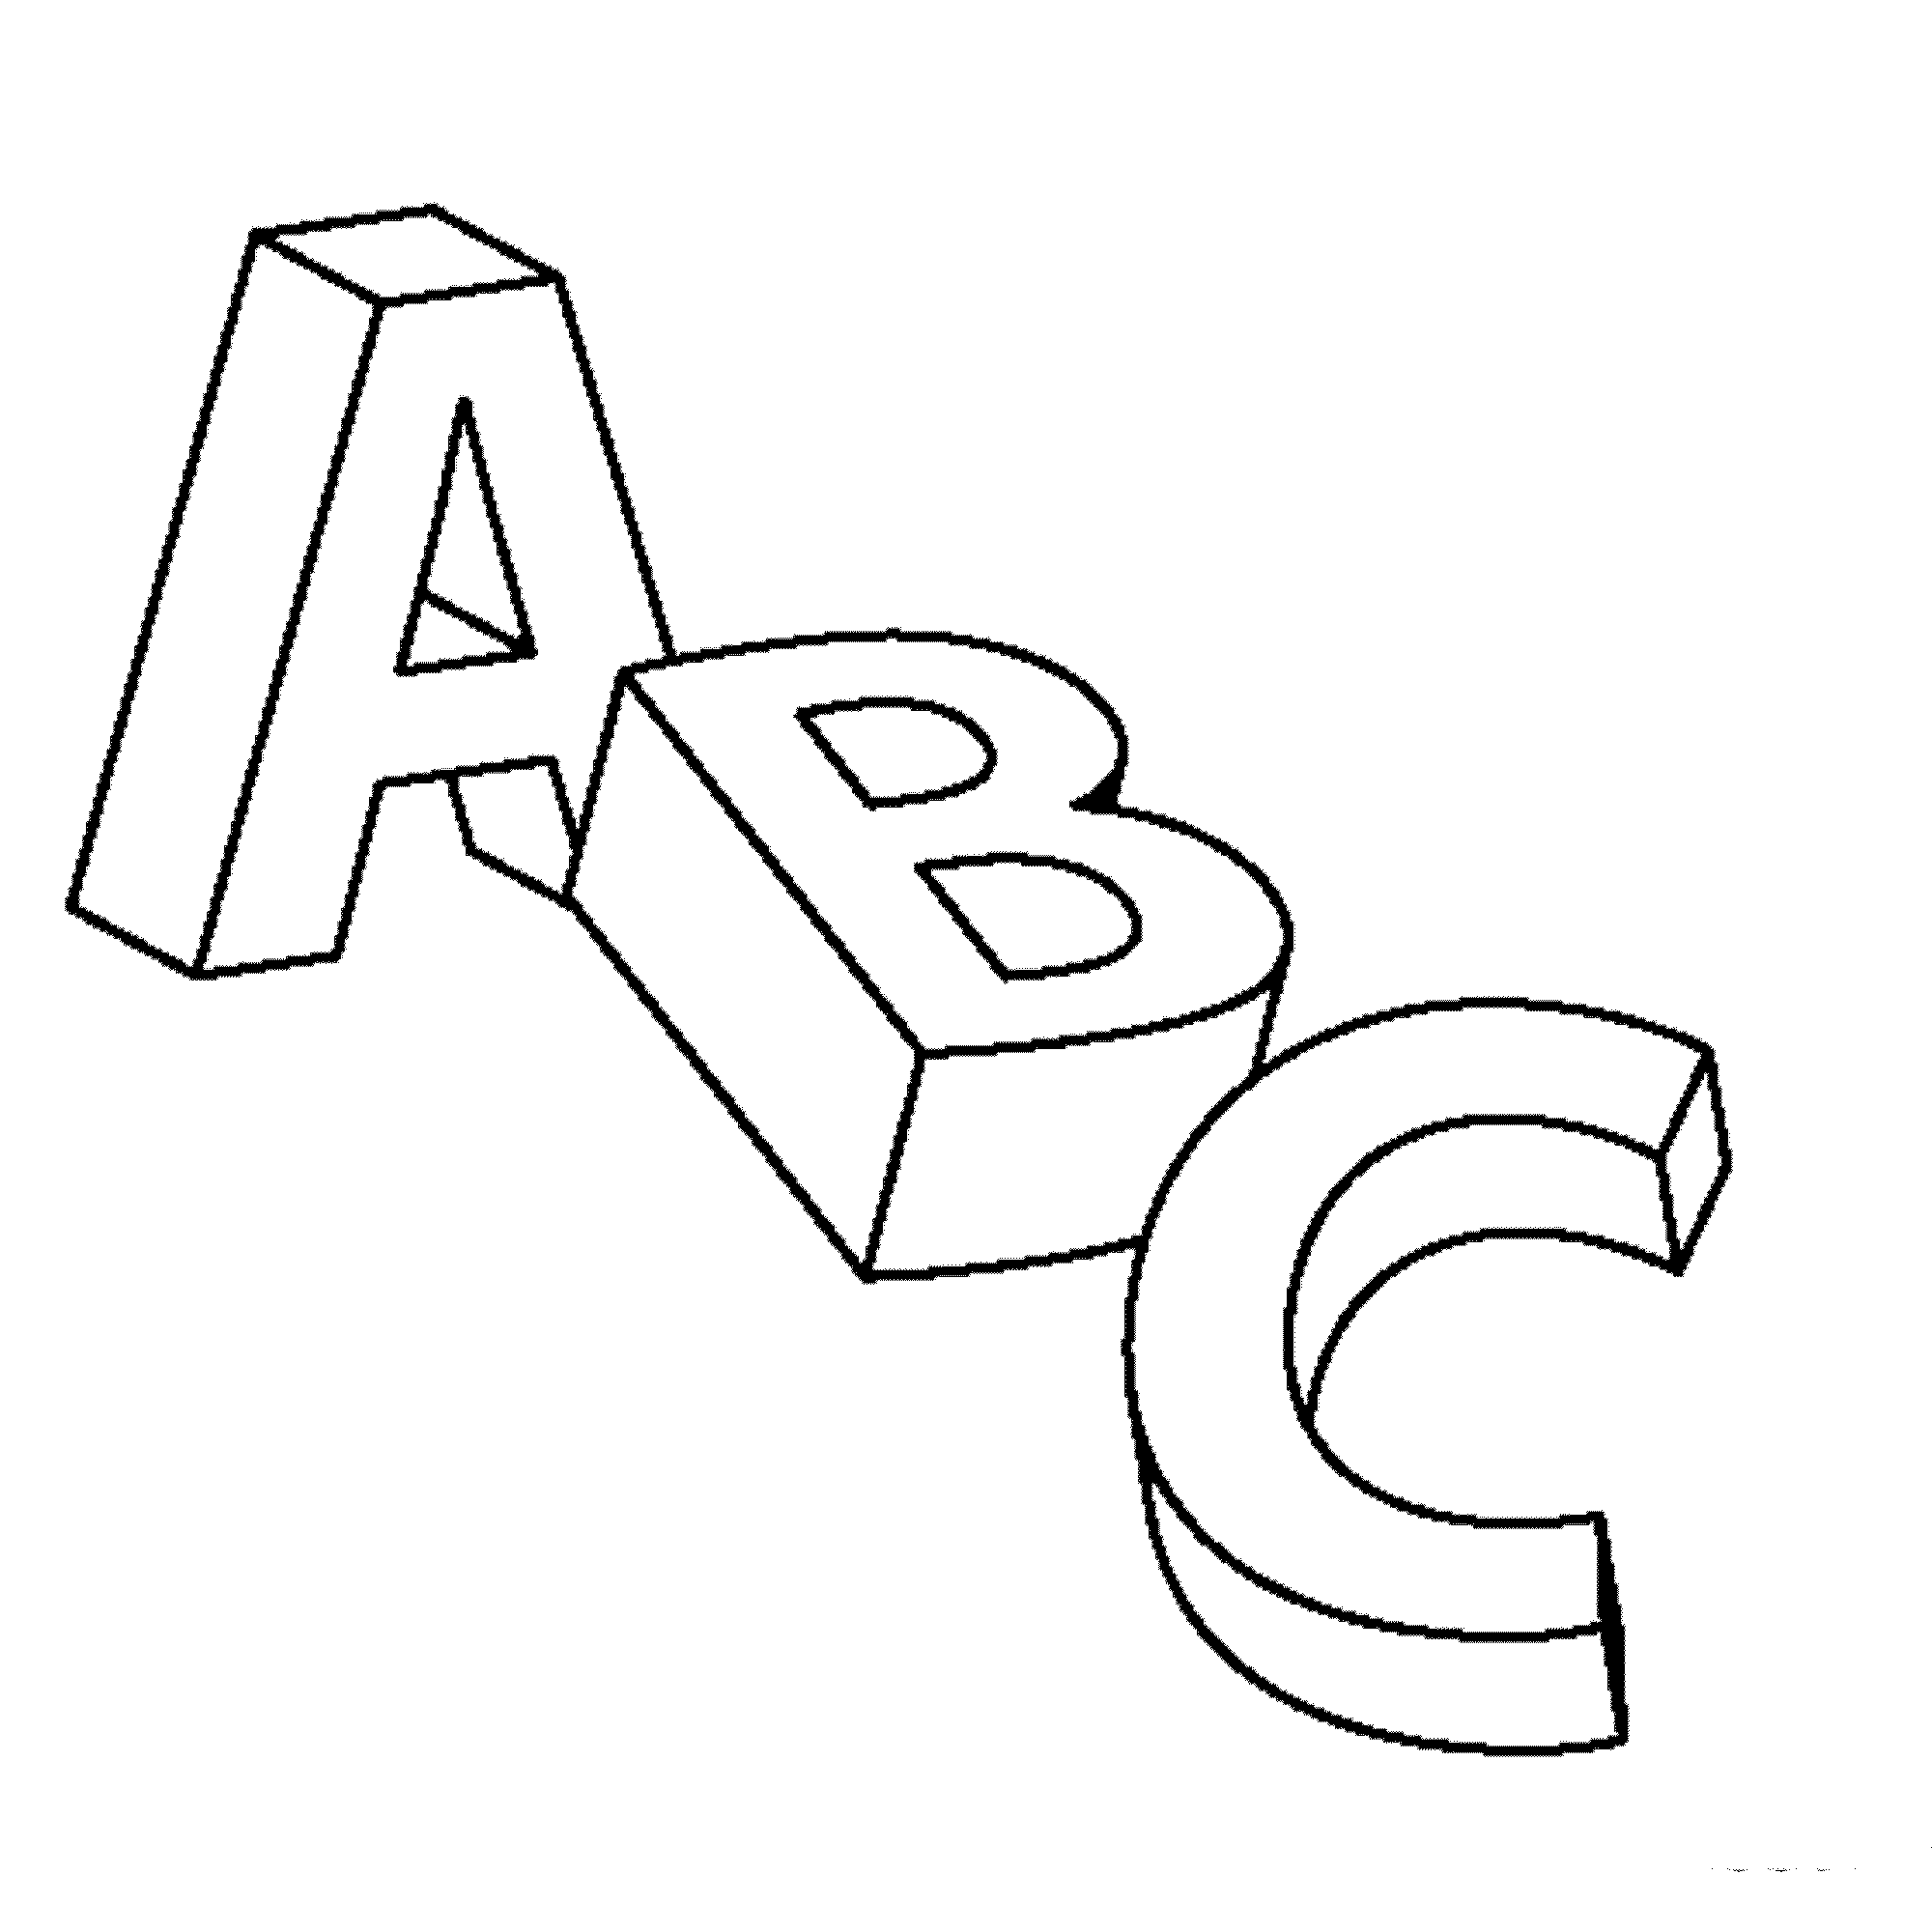 toddler abc coloring pages free printable alphabet coloring pages for kids best abc coloring toddler pages